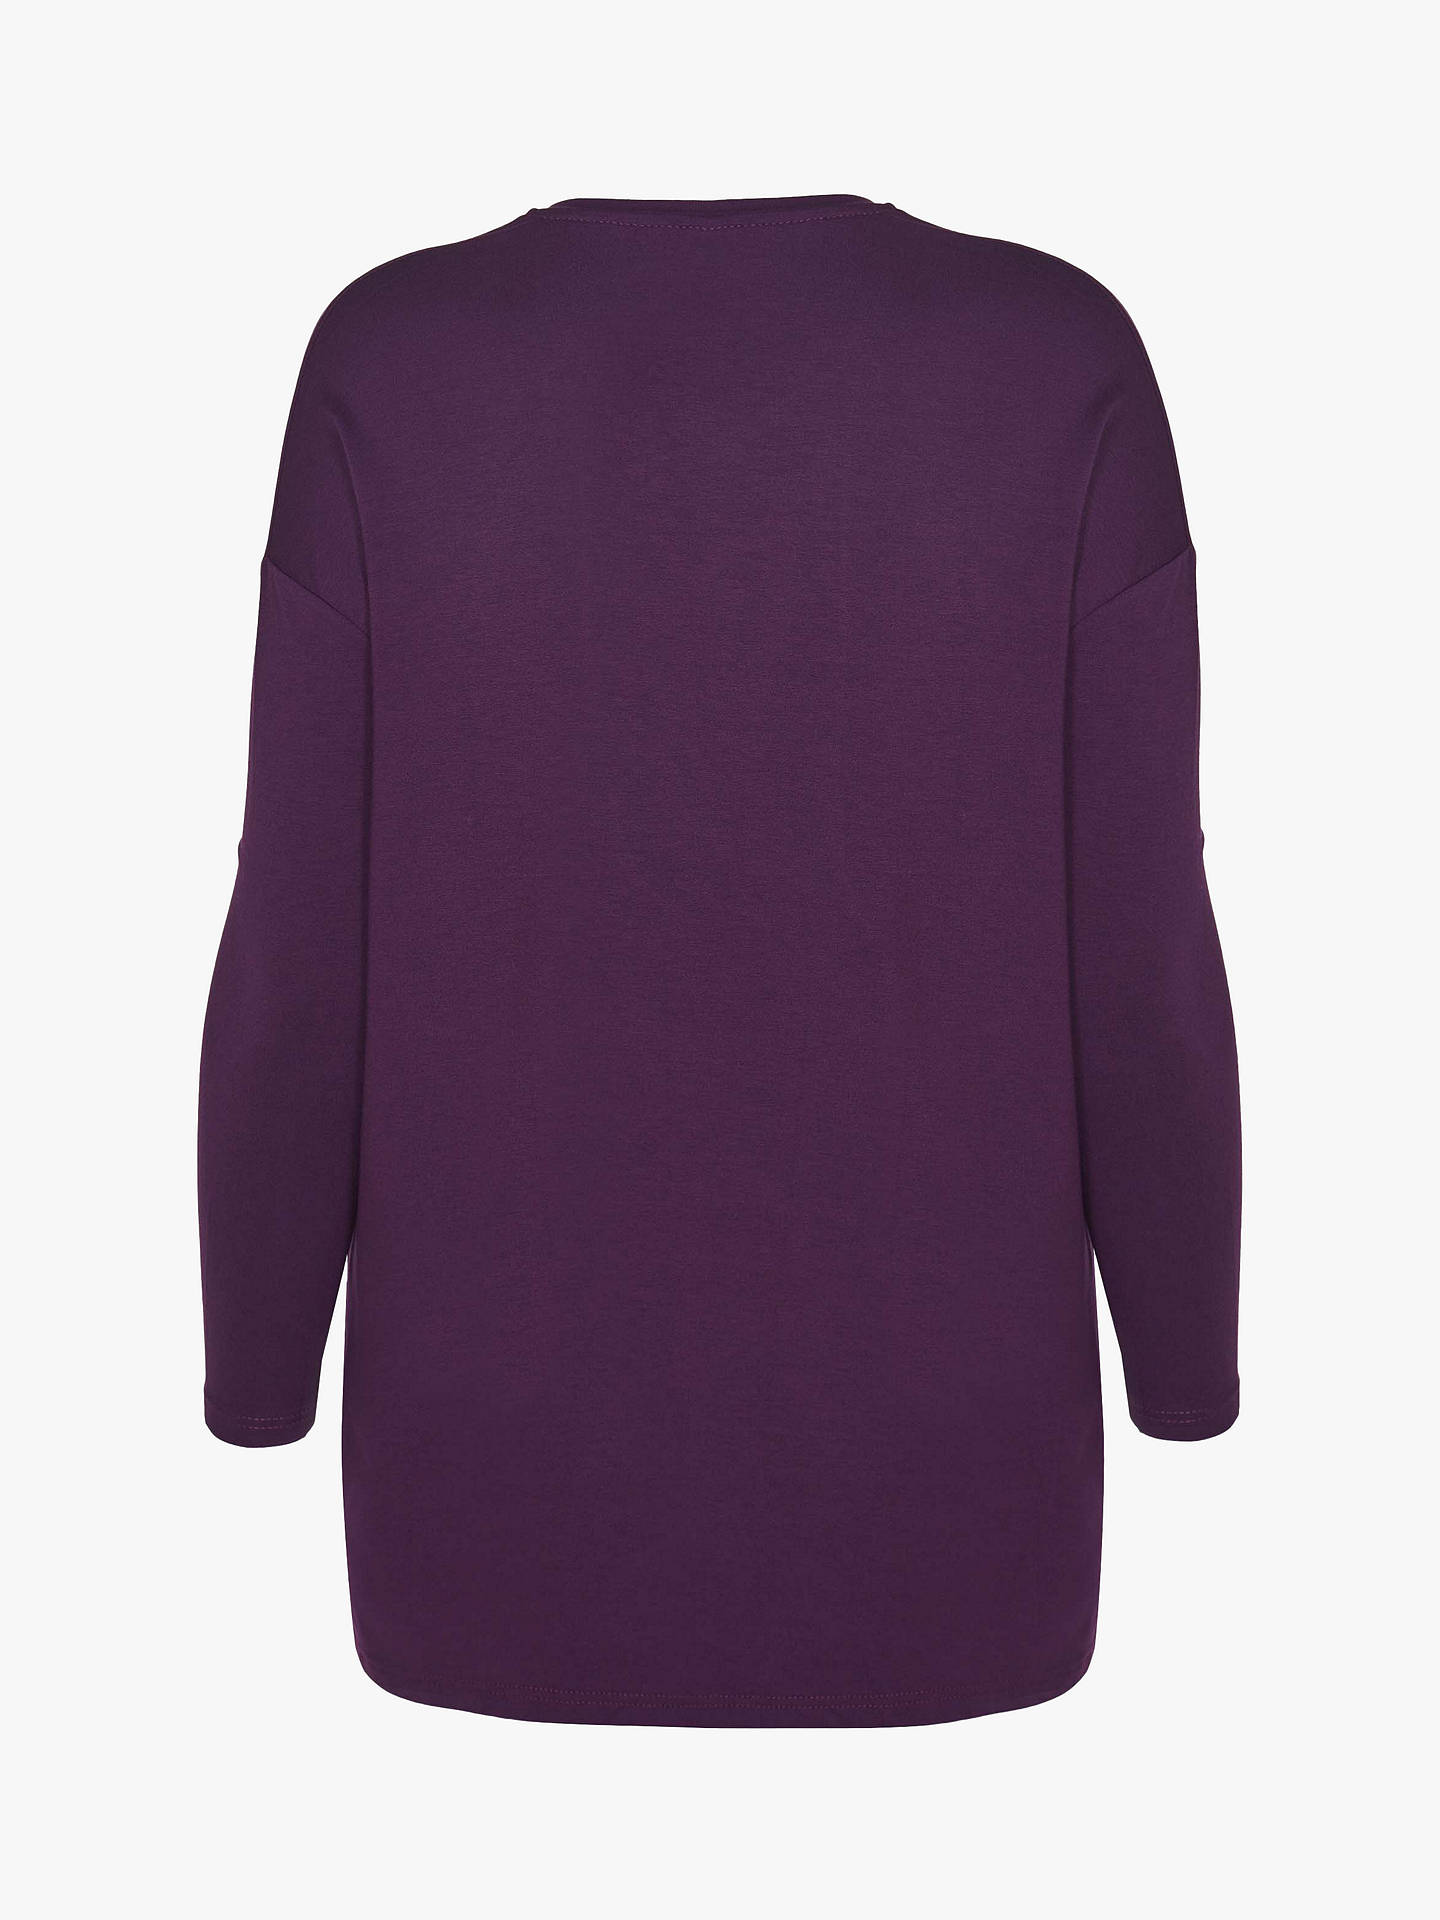 Buy Live Unlimited Curve V-Neck Top, Burgundy, 12 Online at johnlewis.com